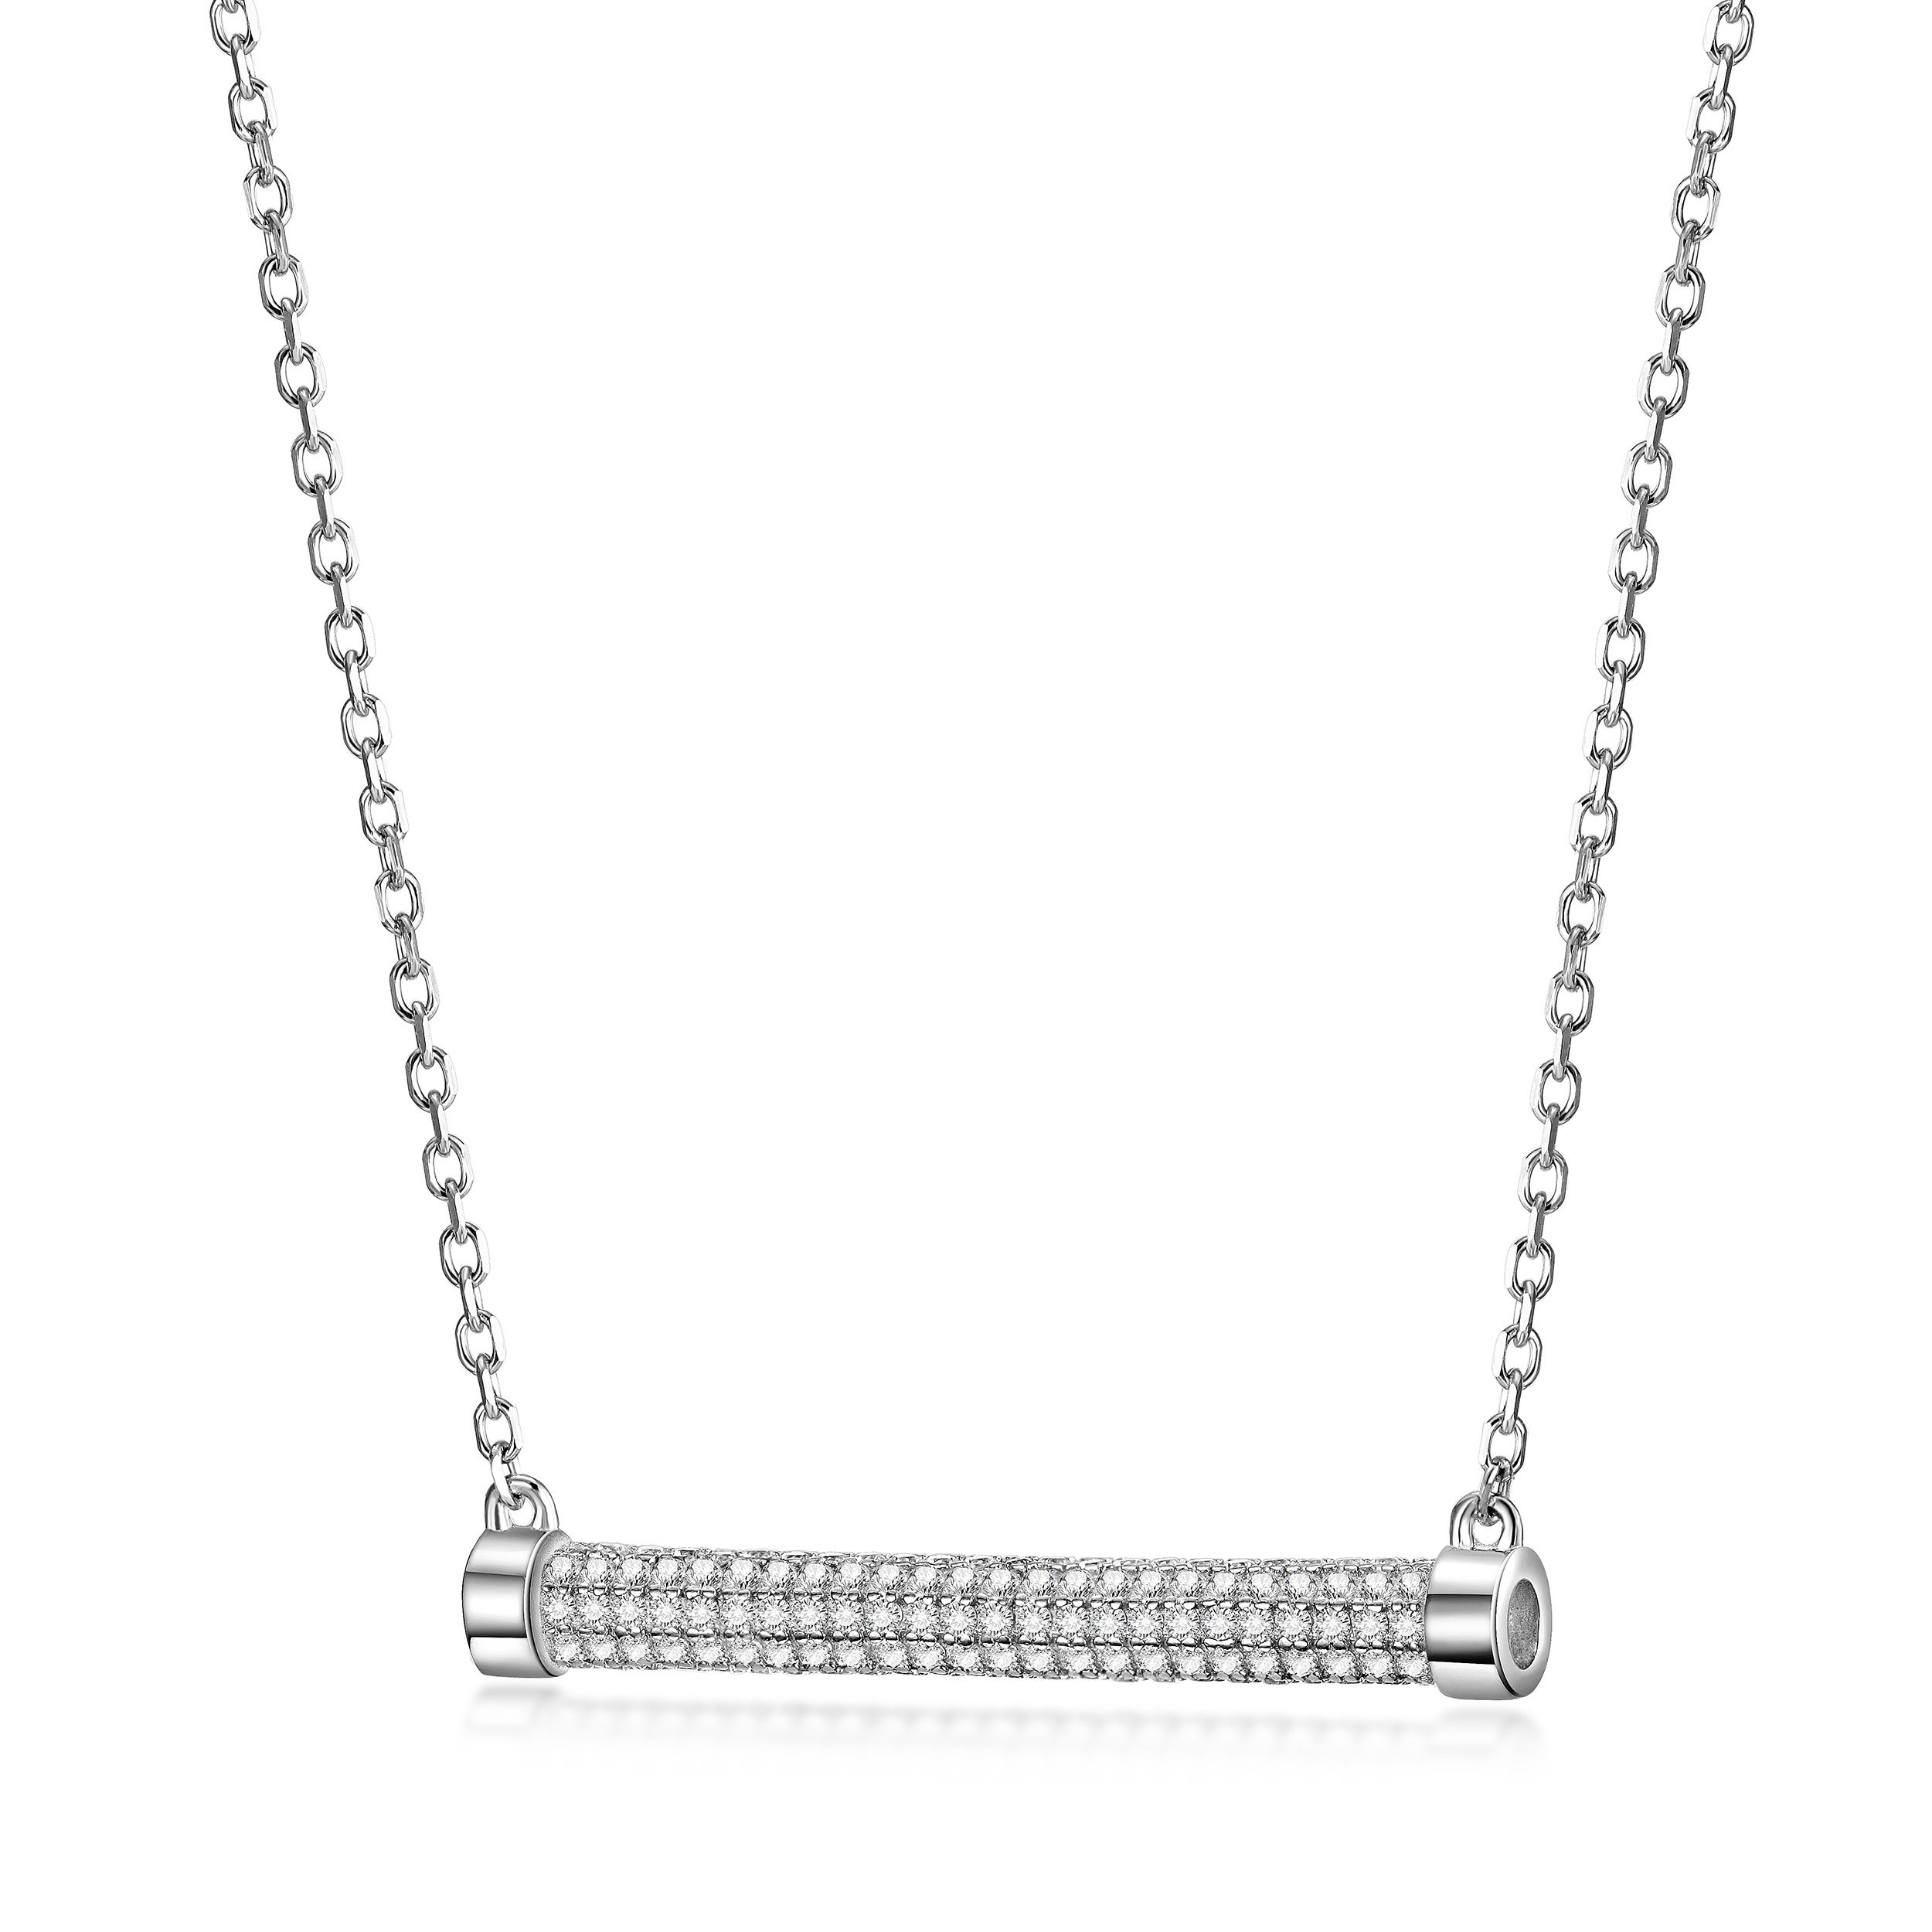 Wistic Bar Pendant Necklace Sterling Silver Necklace for Women Adjustable Chain with Cubic Zirconia Paved